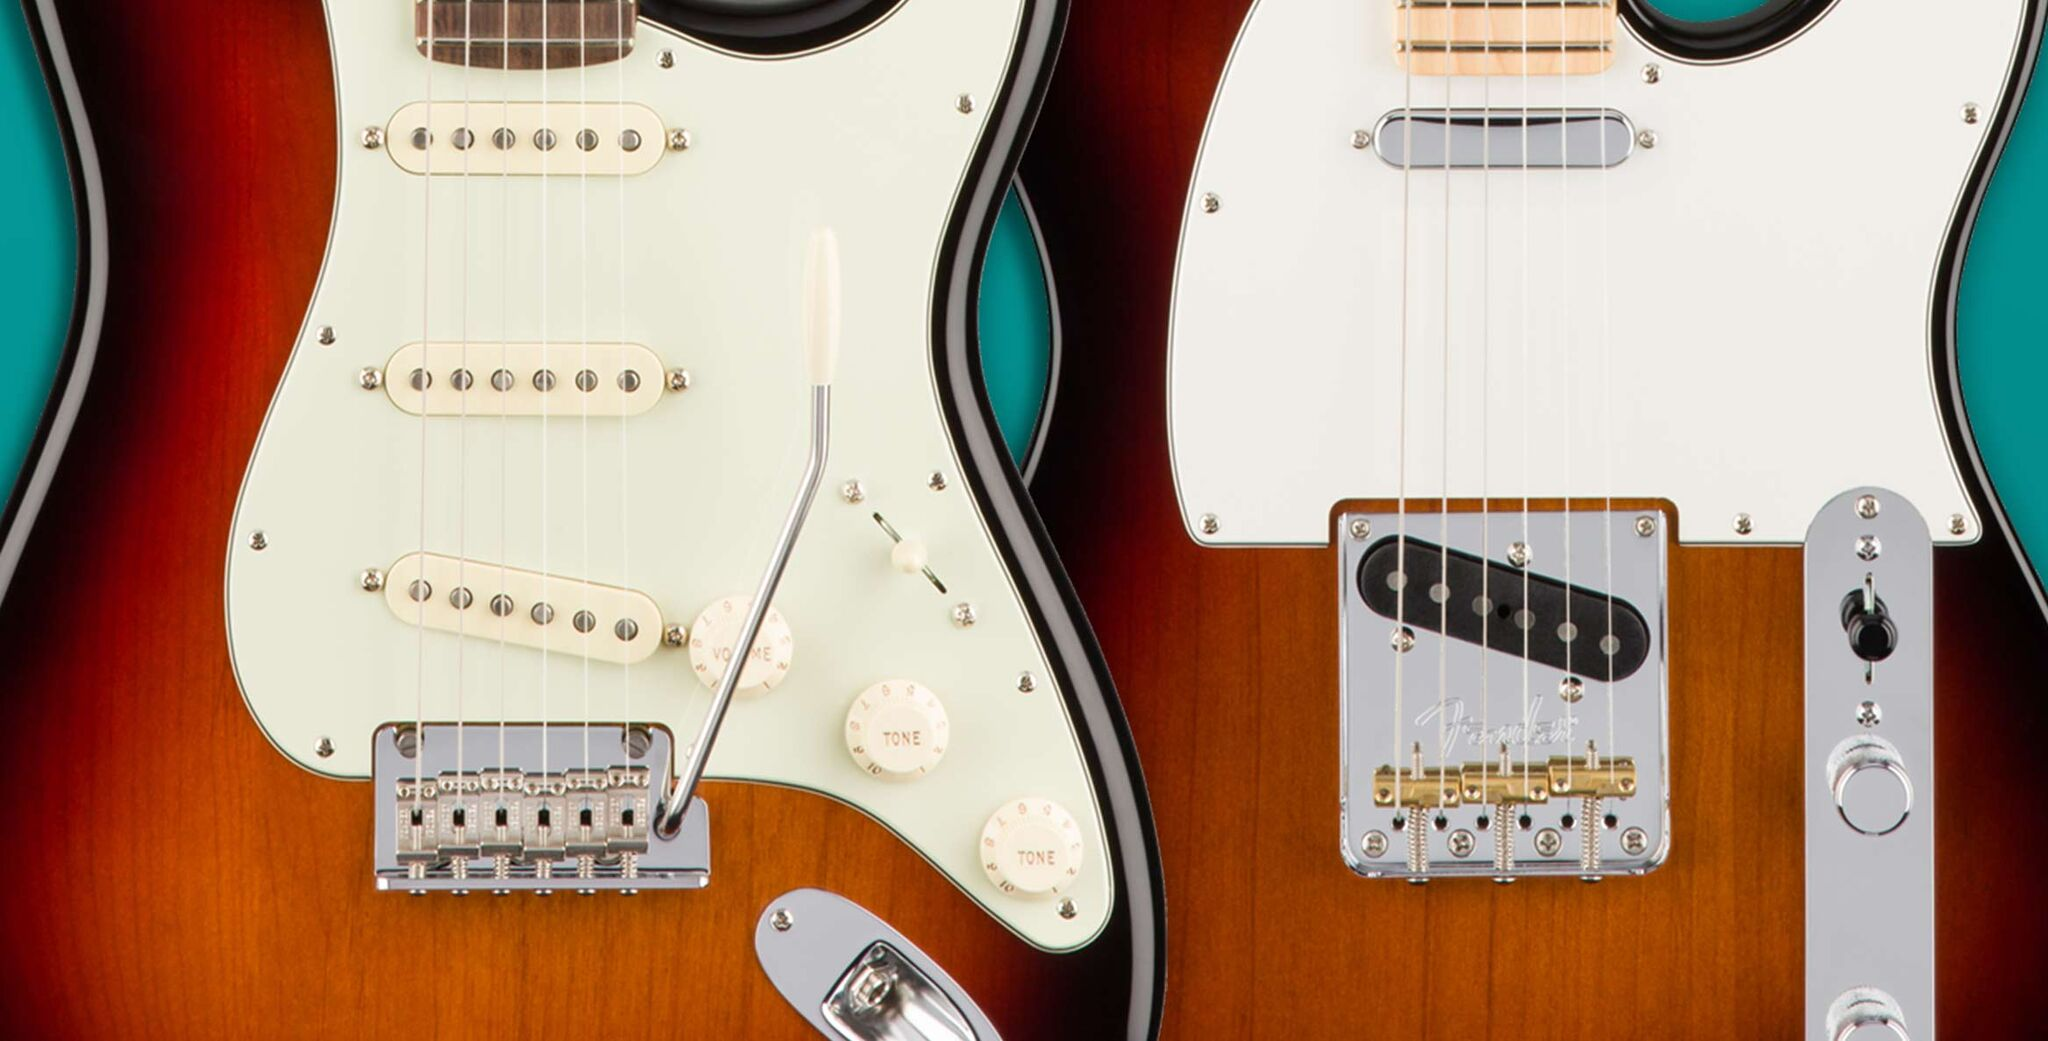 Phenomenal Fender Stratocaster Vs Telecaster Difference In Tone Sound Body Wiring 101 Kniepimsautoservicenl